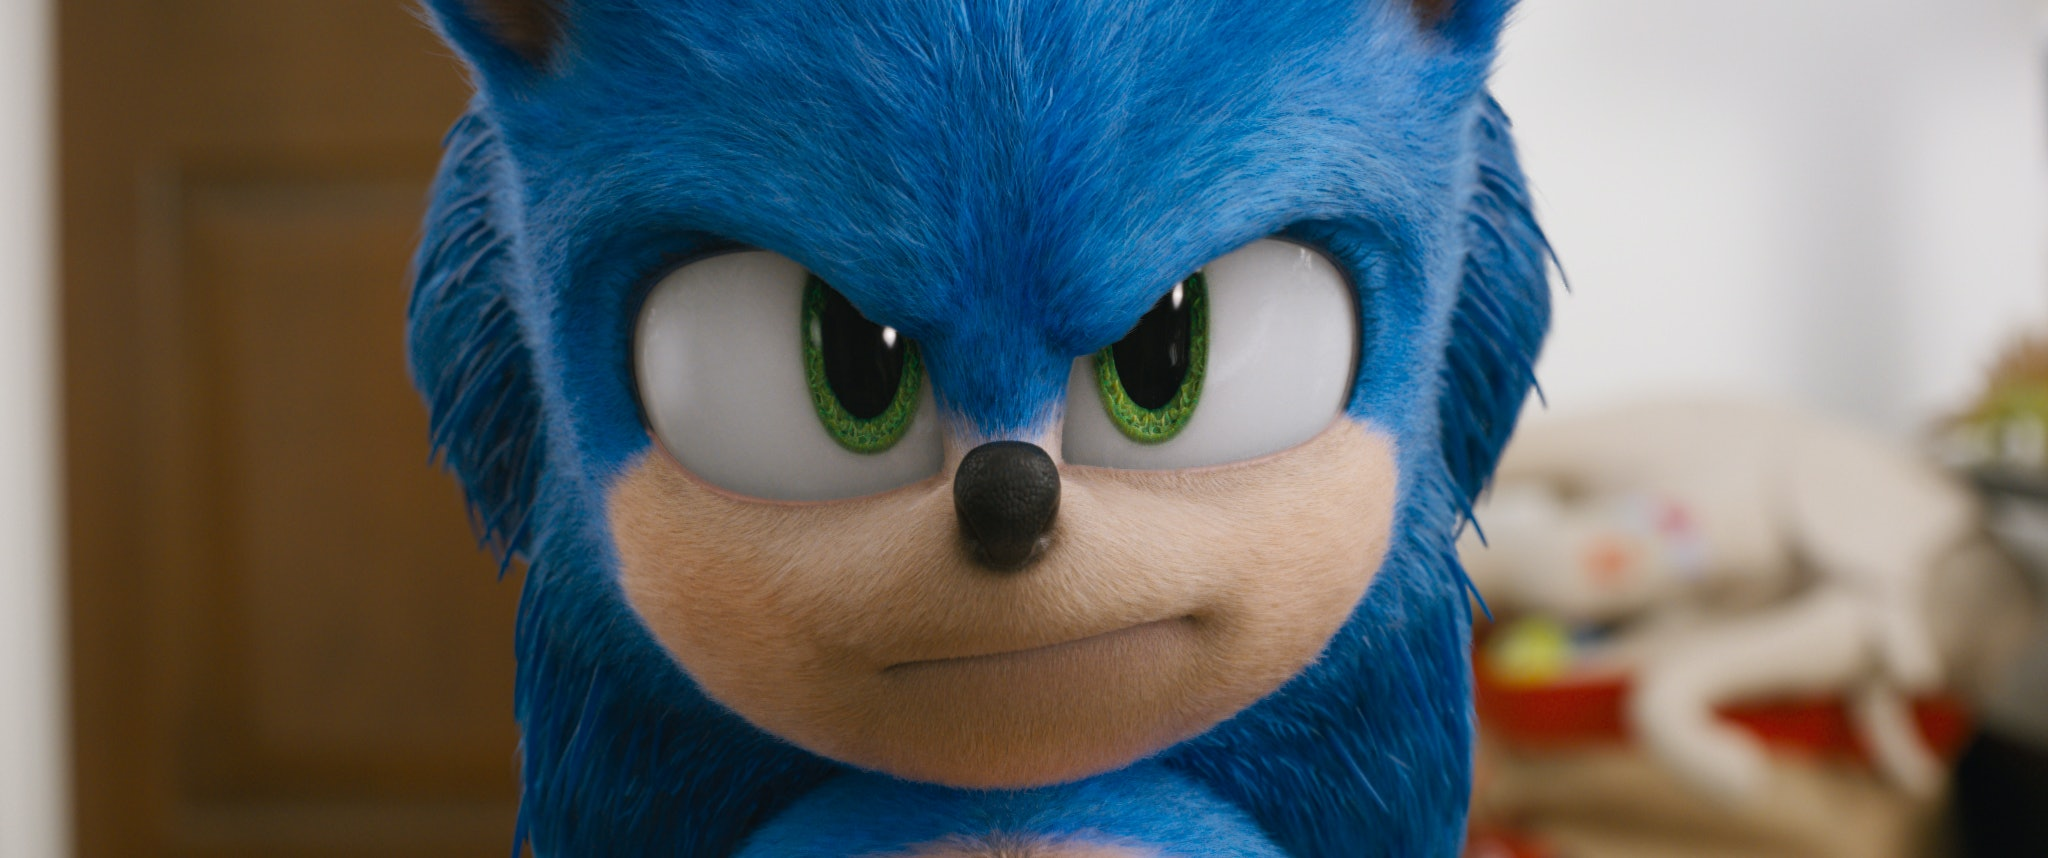 Sonic The Hedgehog 2 Release Date Trailer Plot Spoilers And More On Inevitable Sequel